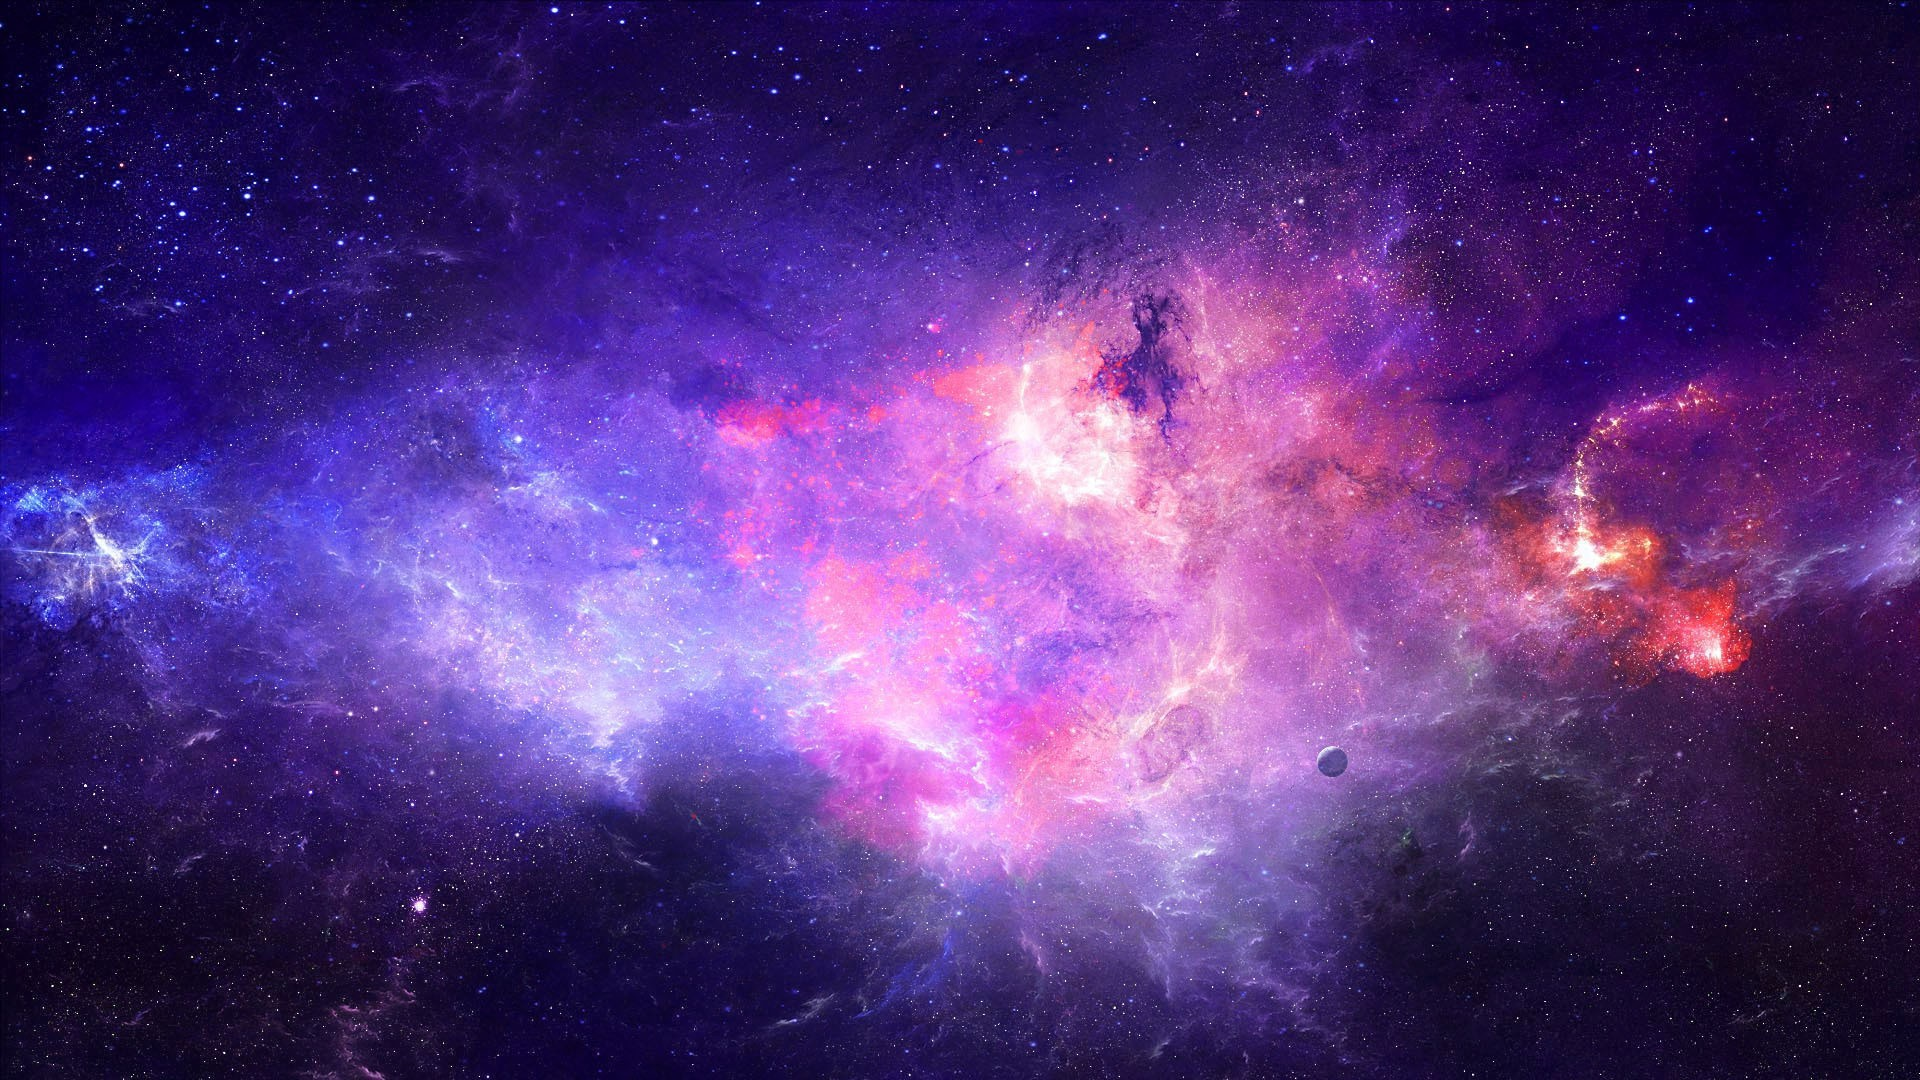 Download Ipad Space Wallpaper Hd Gallery: Space Wallpapers Images Photos Pictures Backgrounds